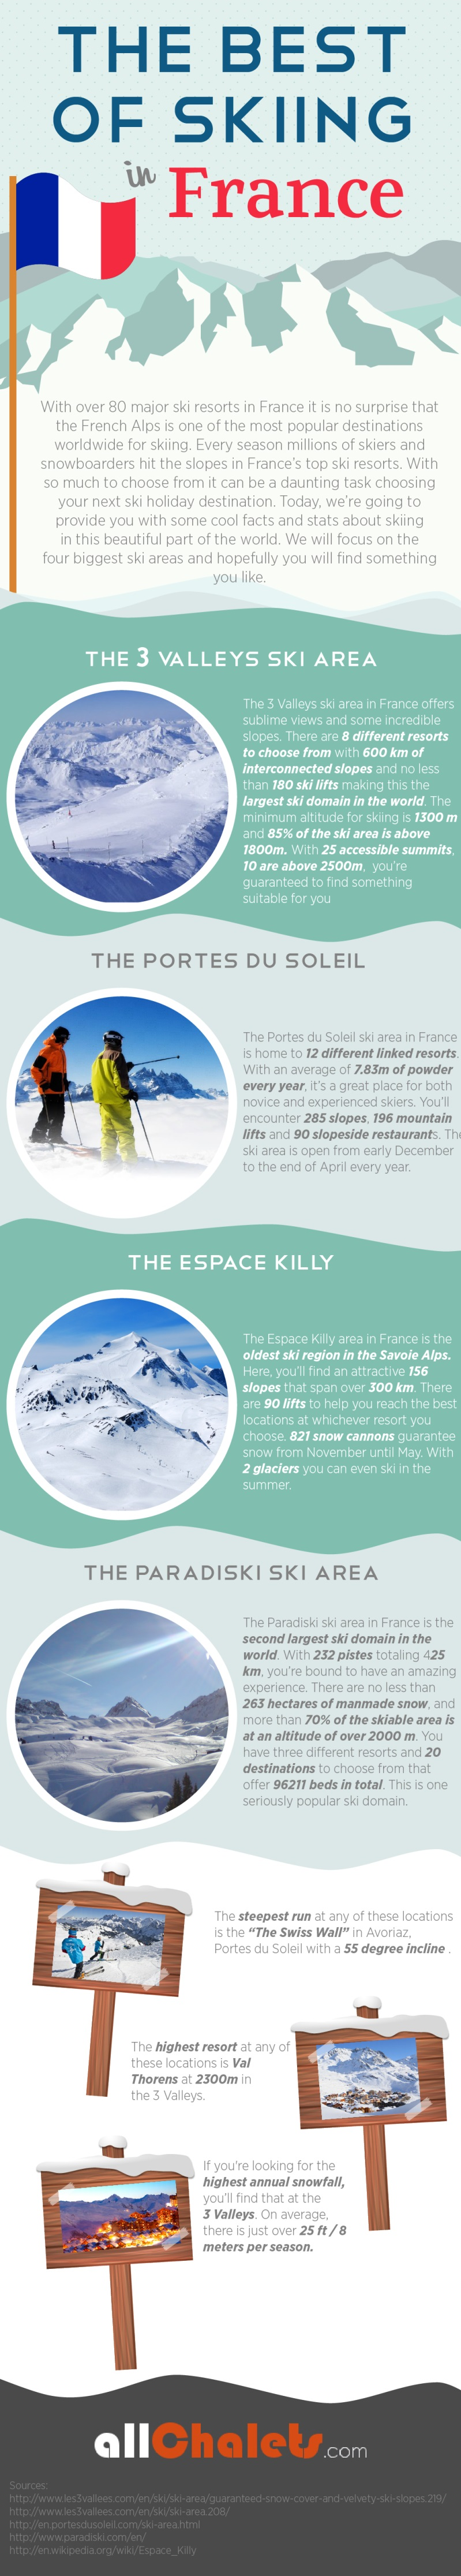 Skiing in France Infographic